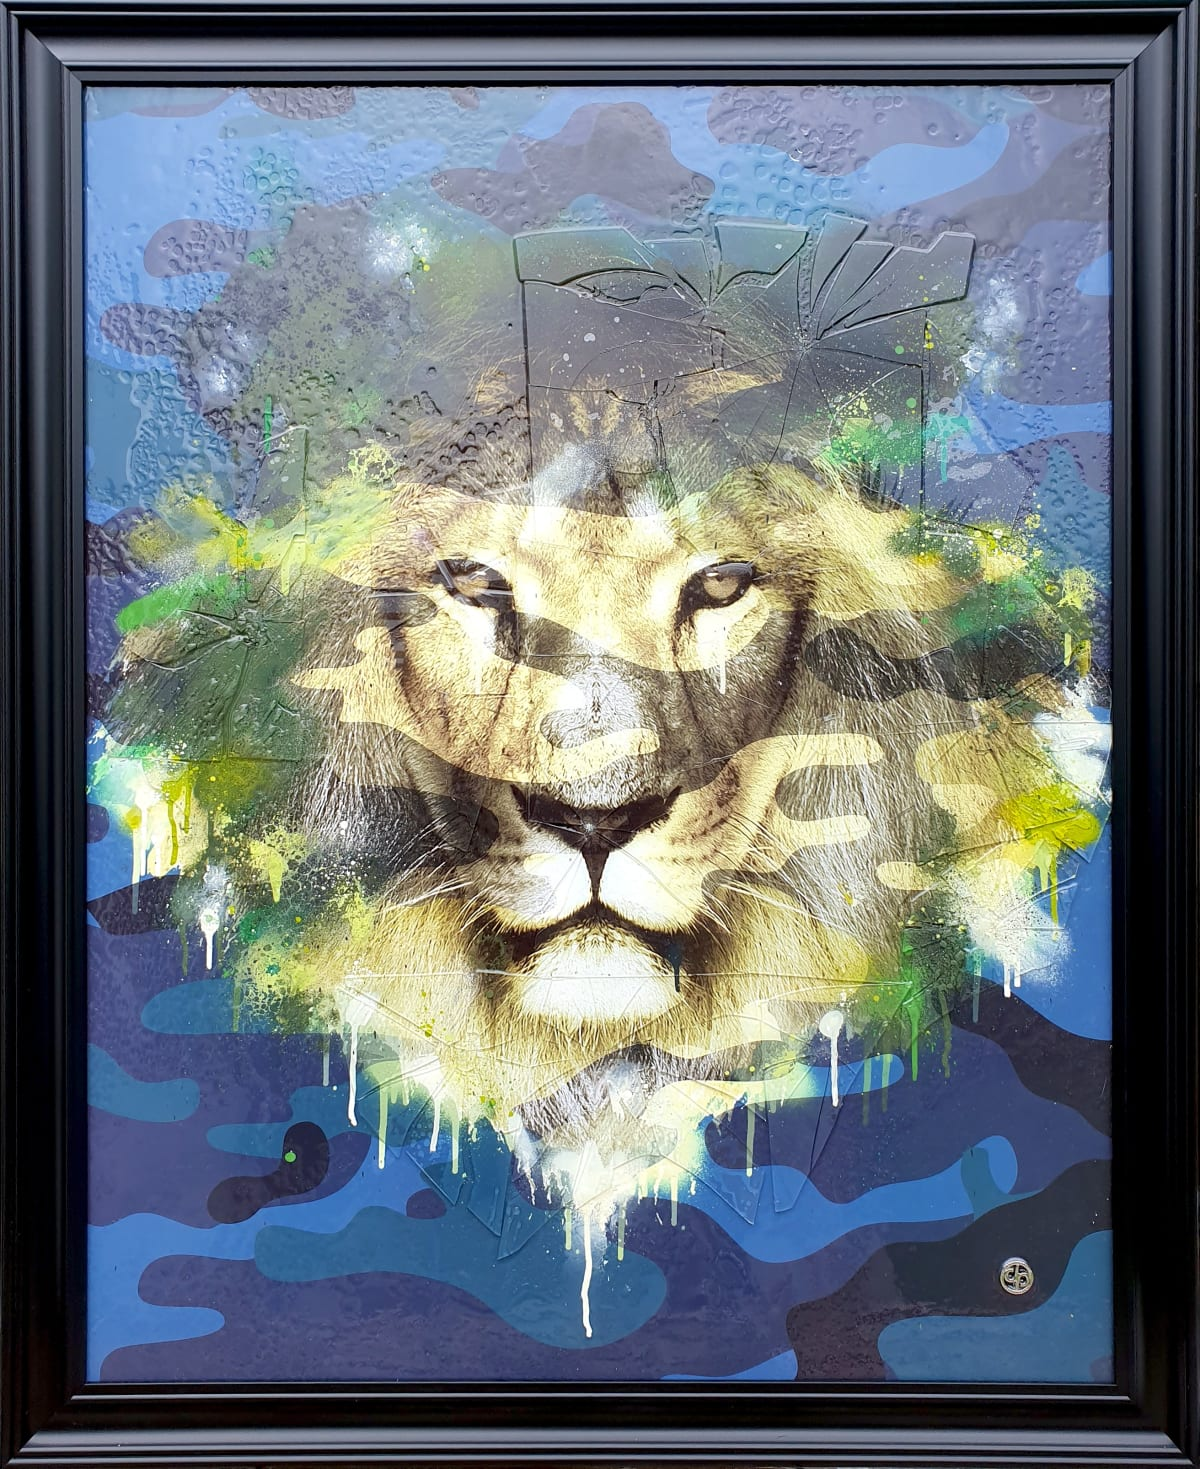 "Dan Pearce Title: Fearless (camo blue) Size: 30"" x 39"" Price: £1,850 (Framed)"